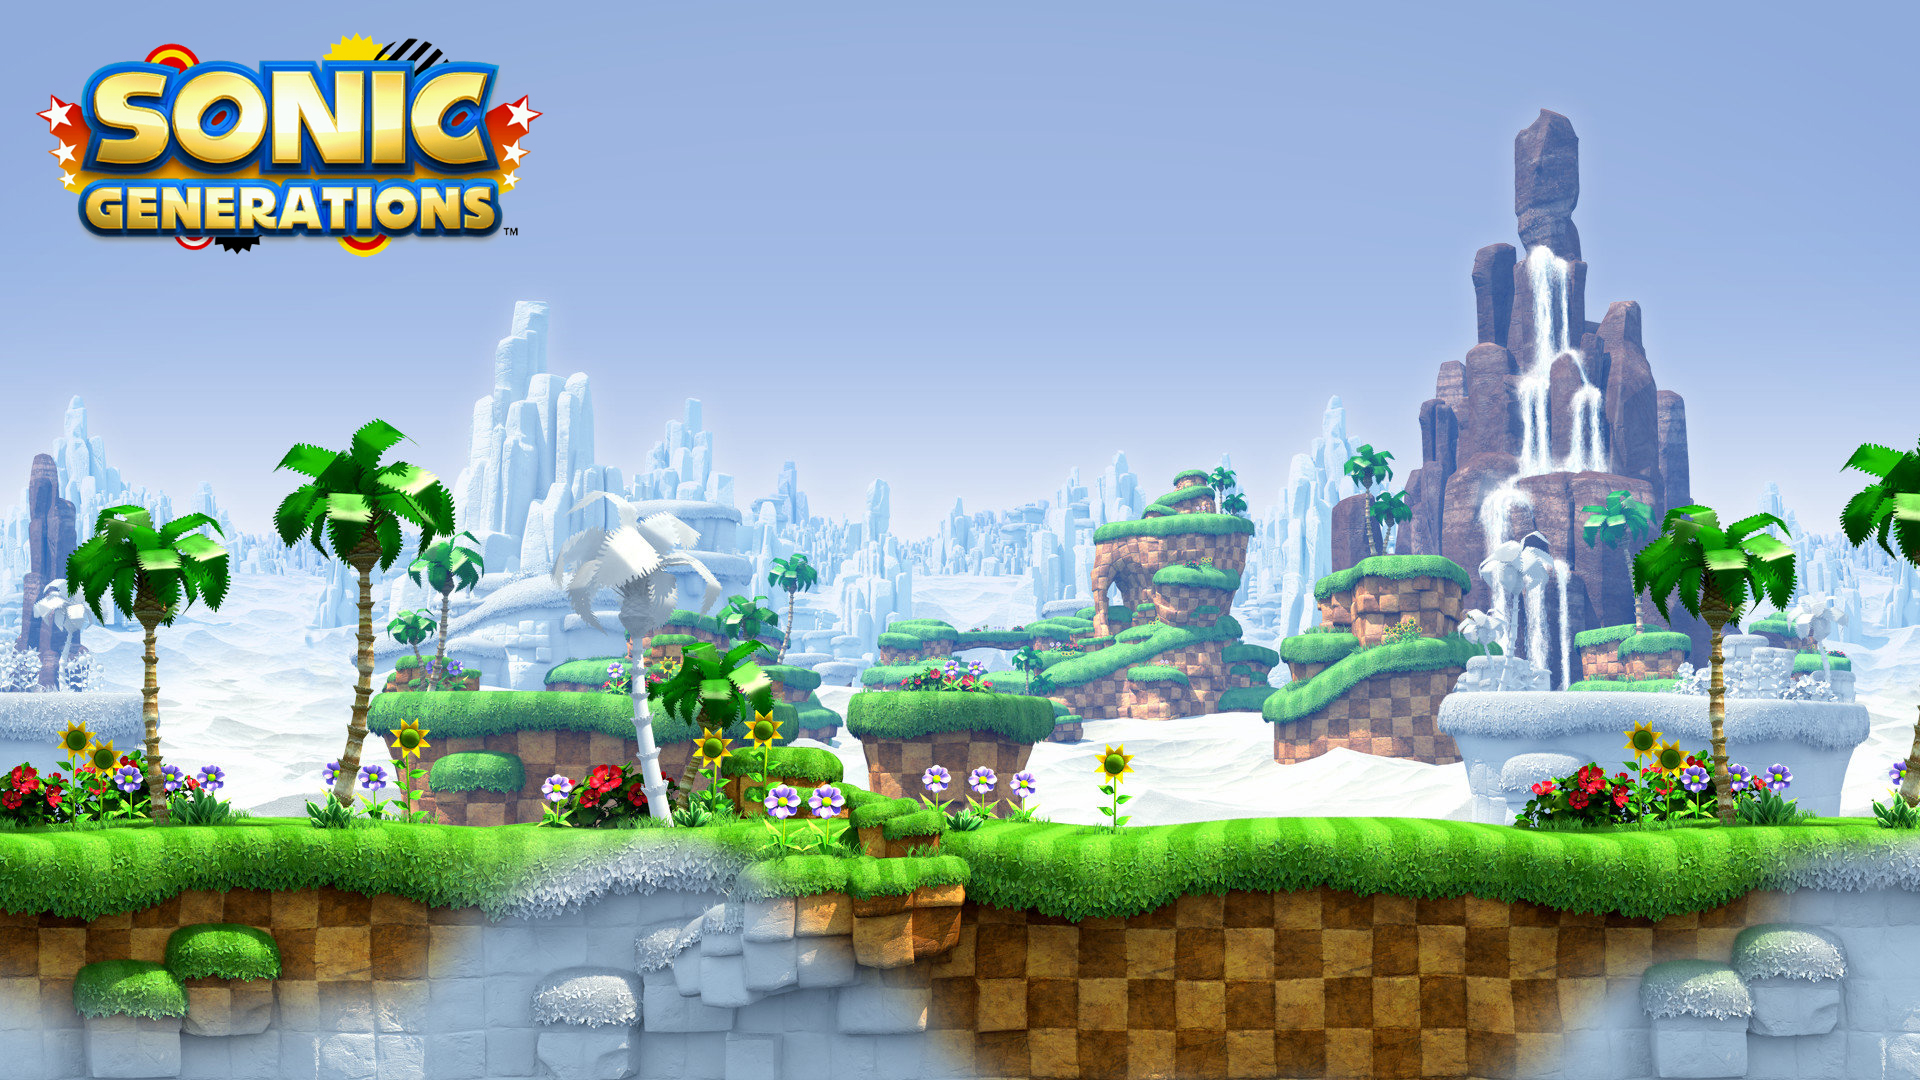 Sonic Generations classic mode landscape. Virtual background to use on Zoom, Microsoft Teams, Skype, Google Meet, WebEx or any other compatible app.